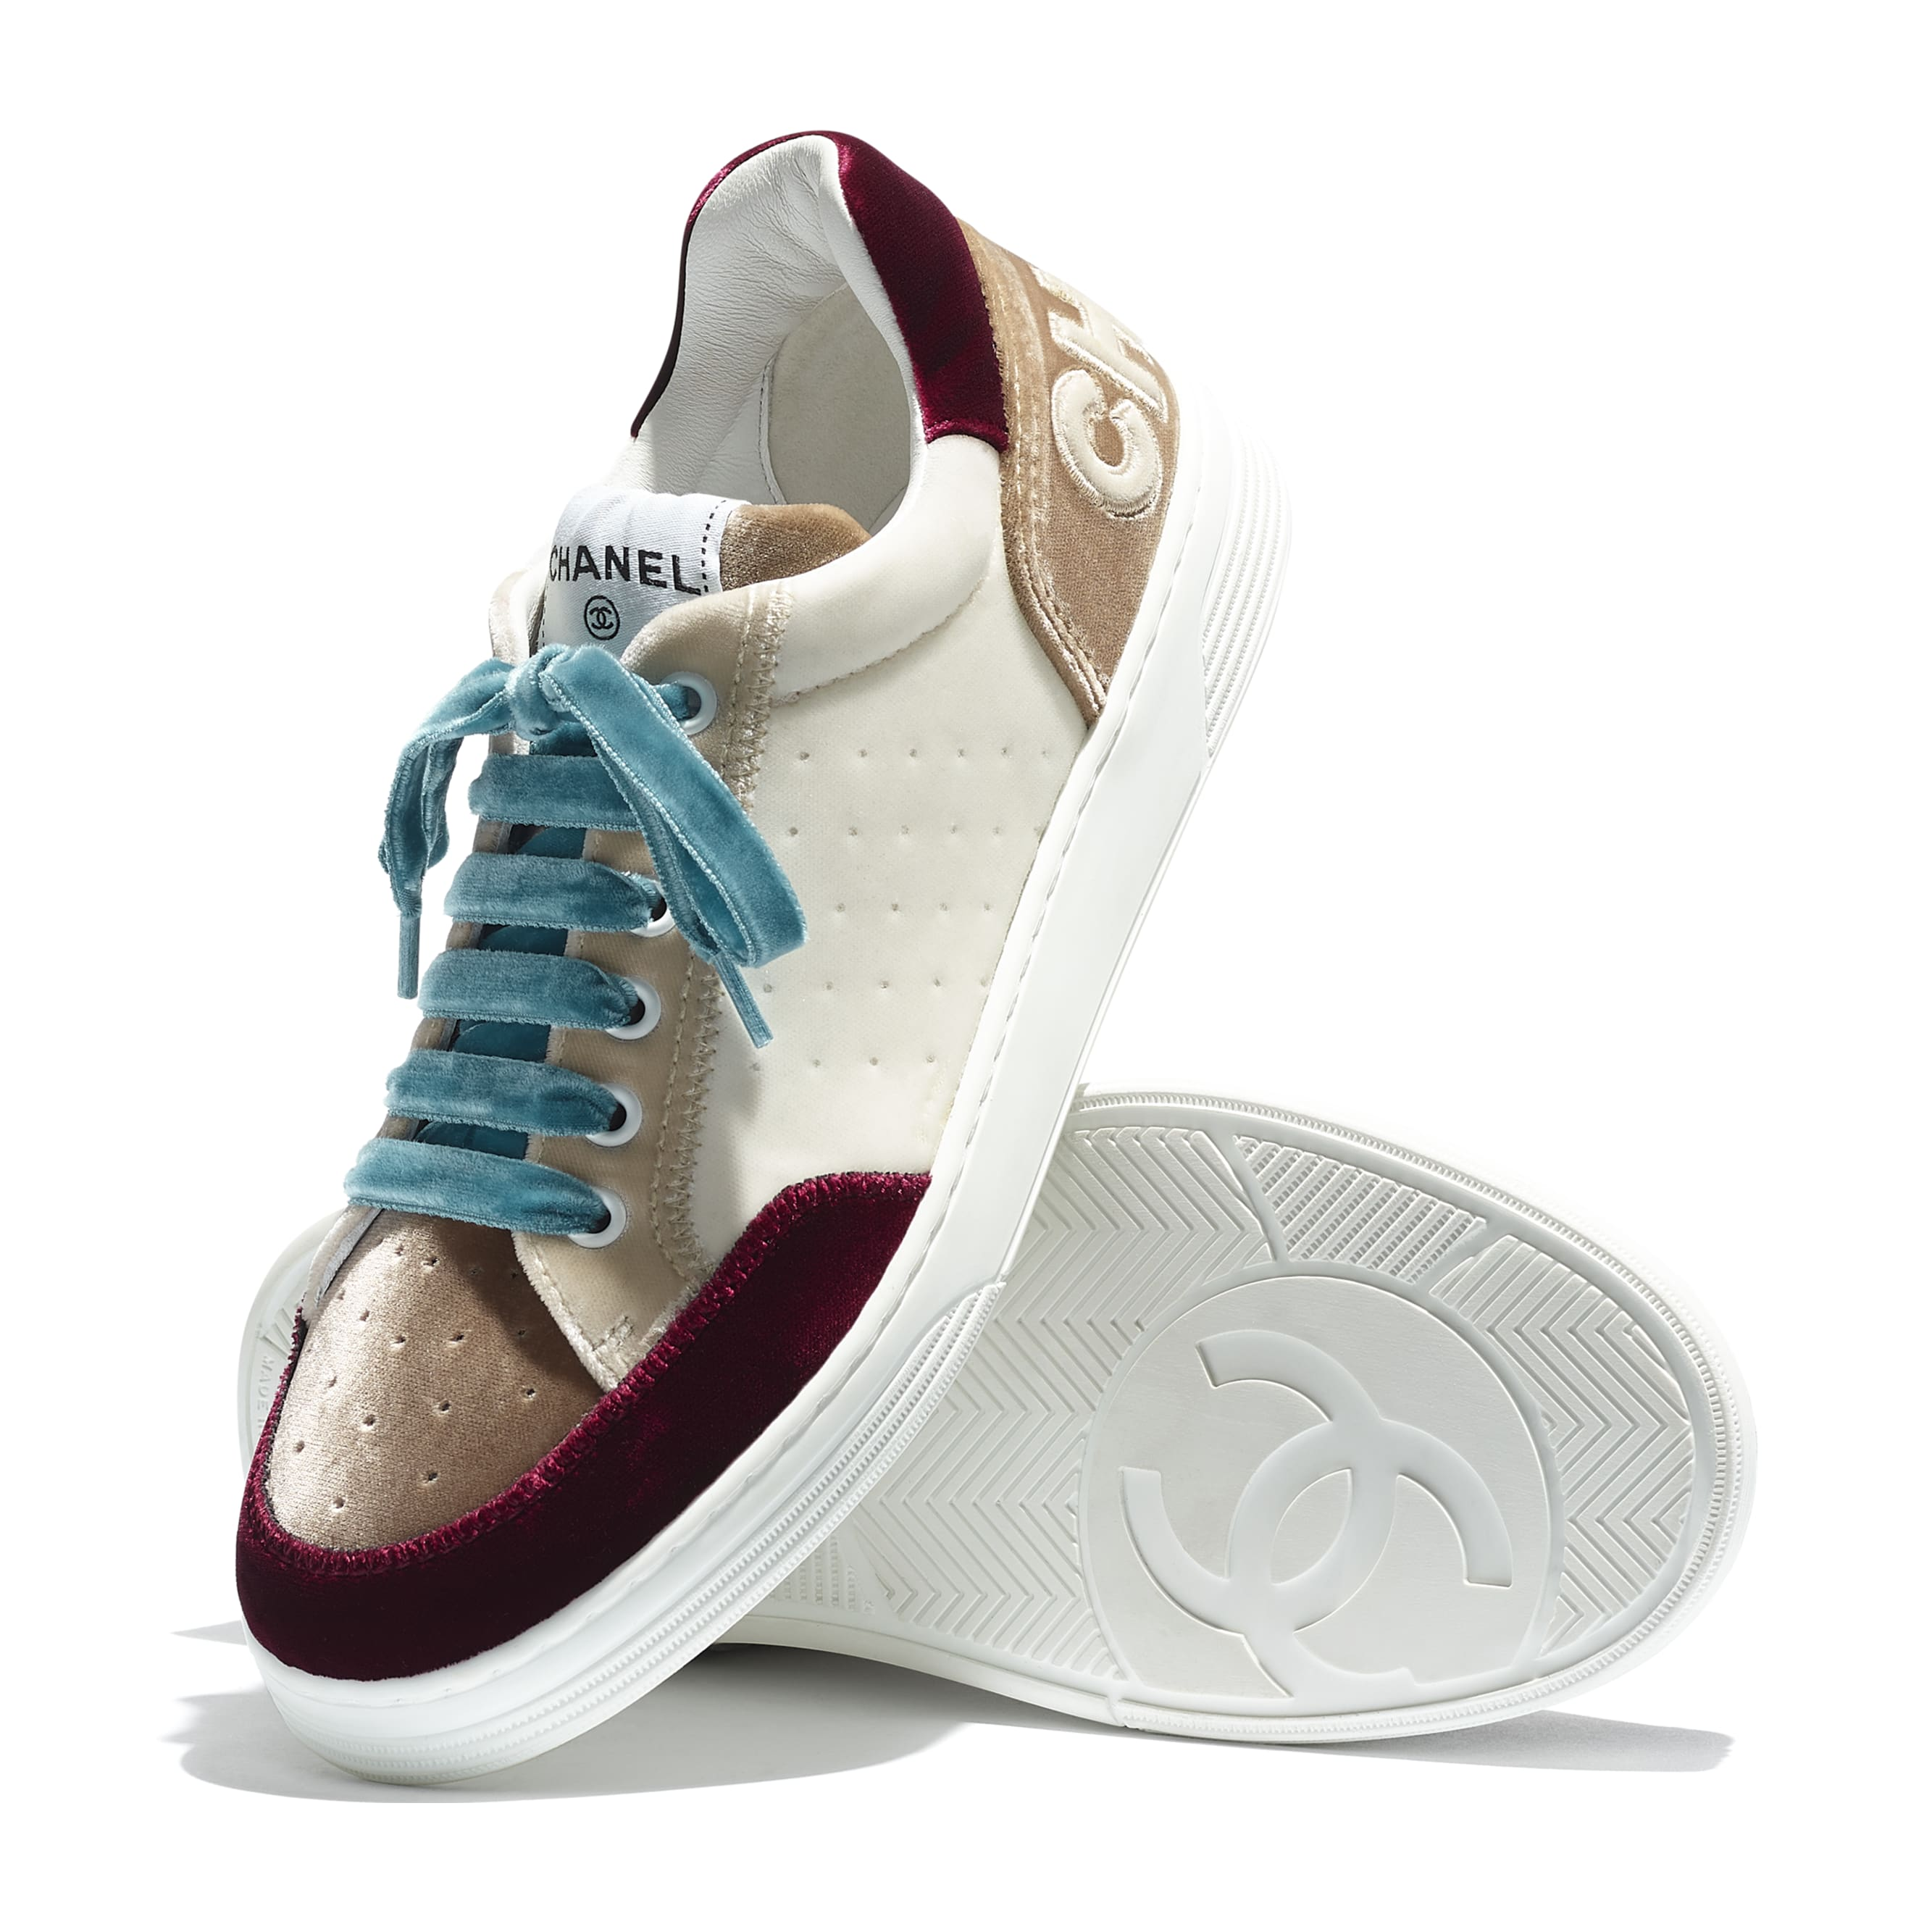 Trainers - White, Beige & Burgundy - Velvet - CHANEL - Extra view - see standard sized version